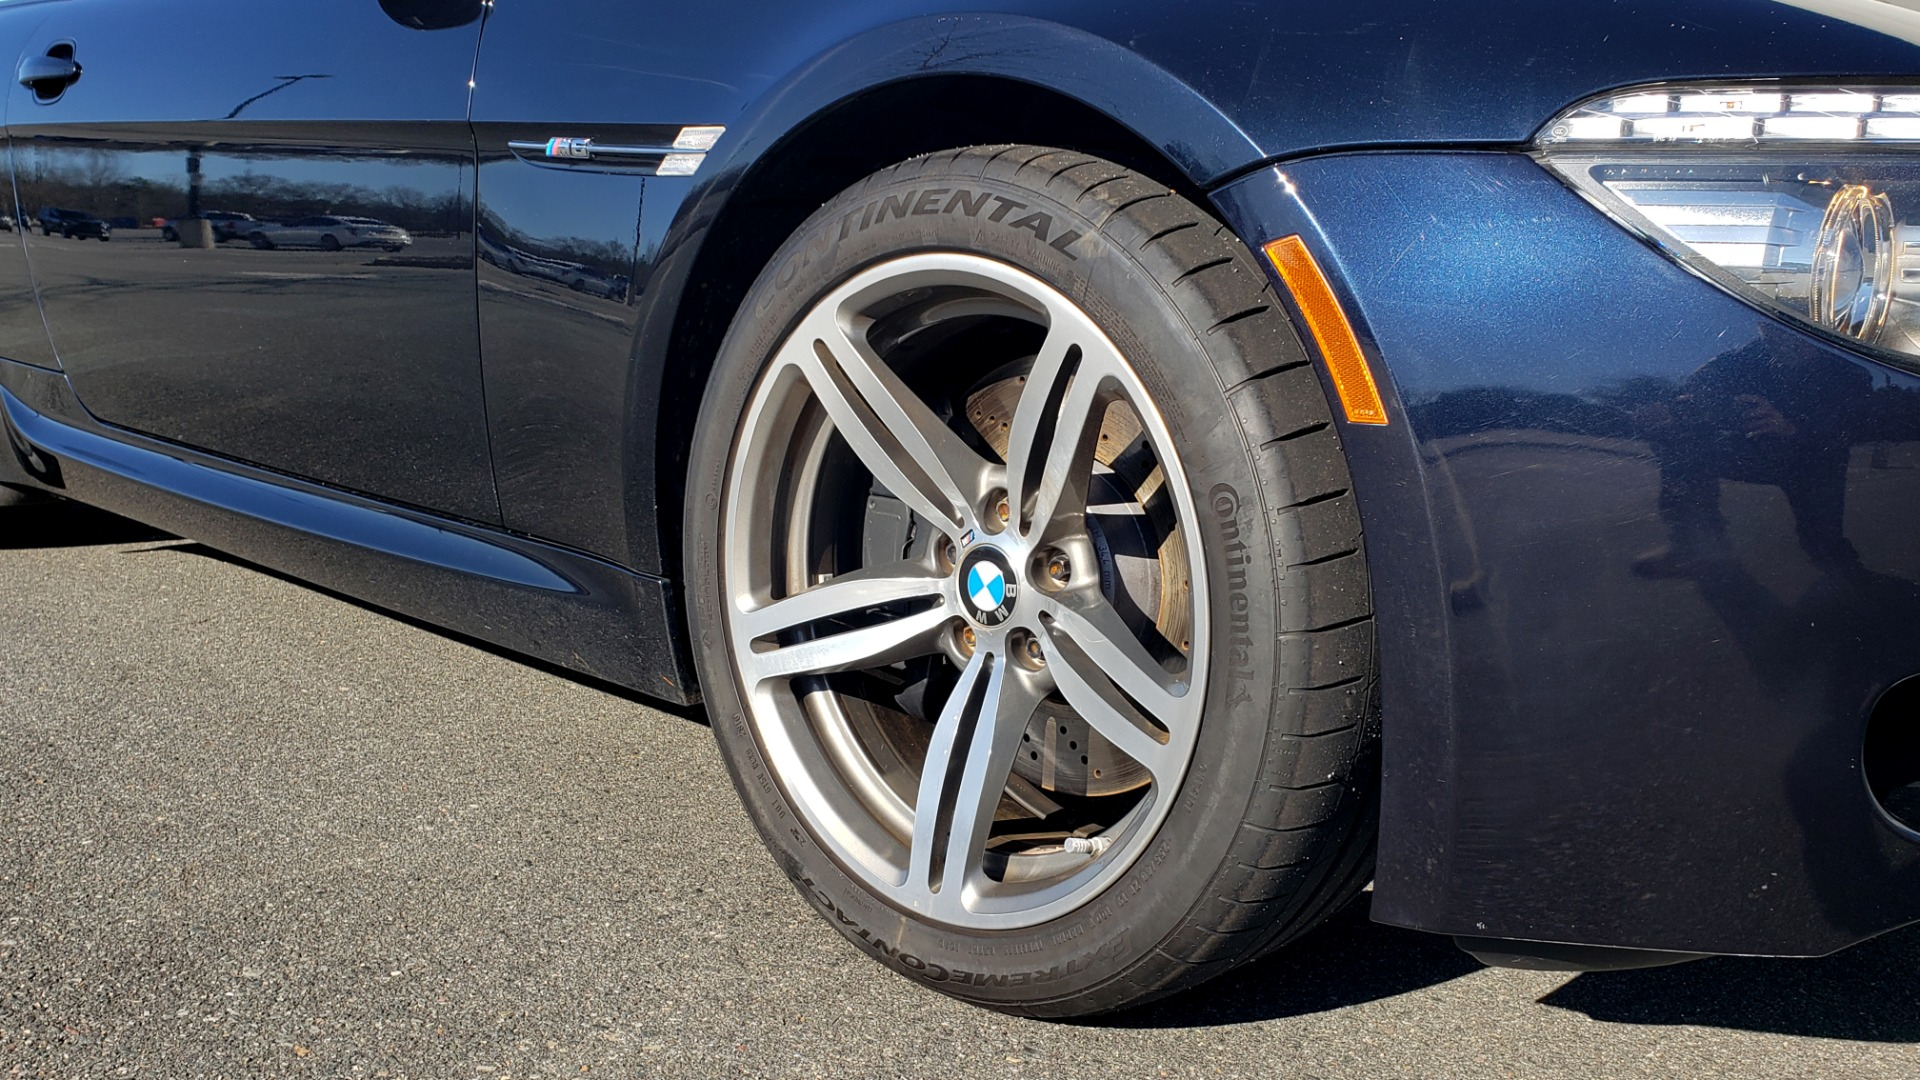 Used 2009 BMW M6 CONVERTIBLE / 5.0L V10 (500HP) / PREM SND / HUD / 19IN WHEELS for sale $24,999 at Formula Imports in Charlotte NC 28227 74